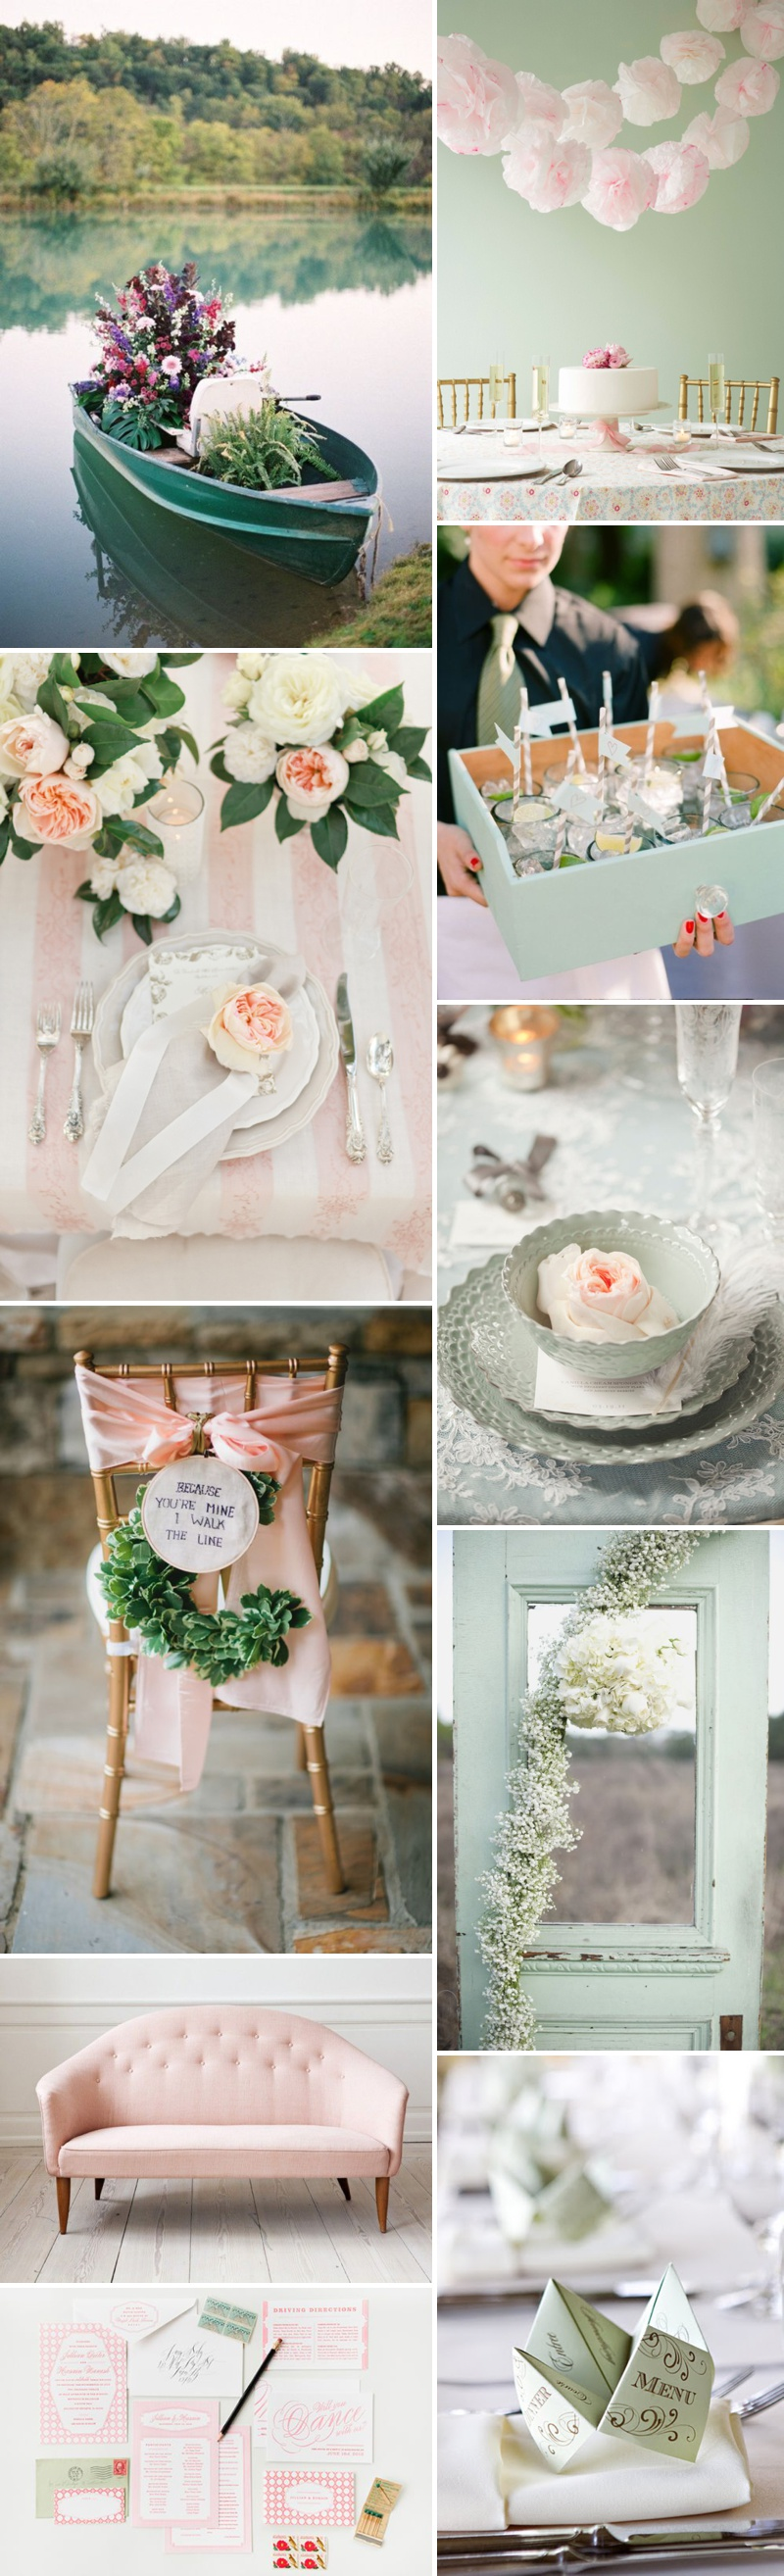 A Beautiful Inspiration Post Showing You How To Incorporate A Pink And Green Colour Scheme Into Your Wedding Day_0003